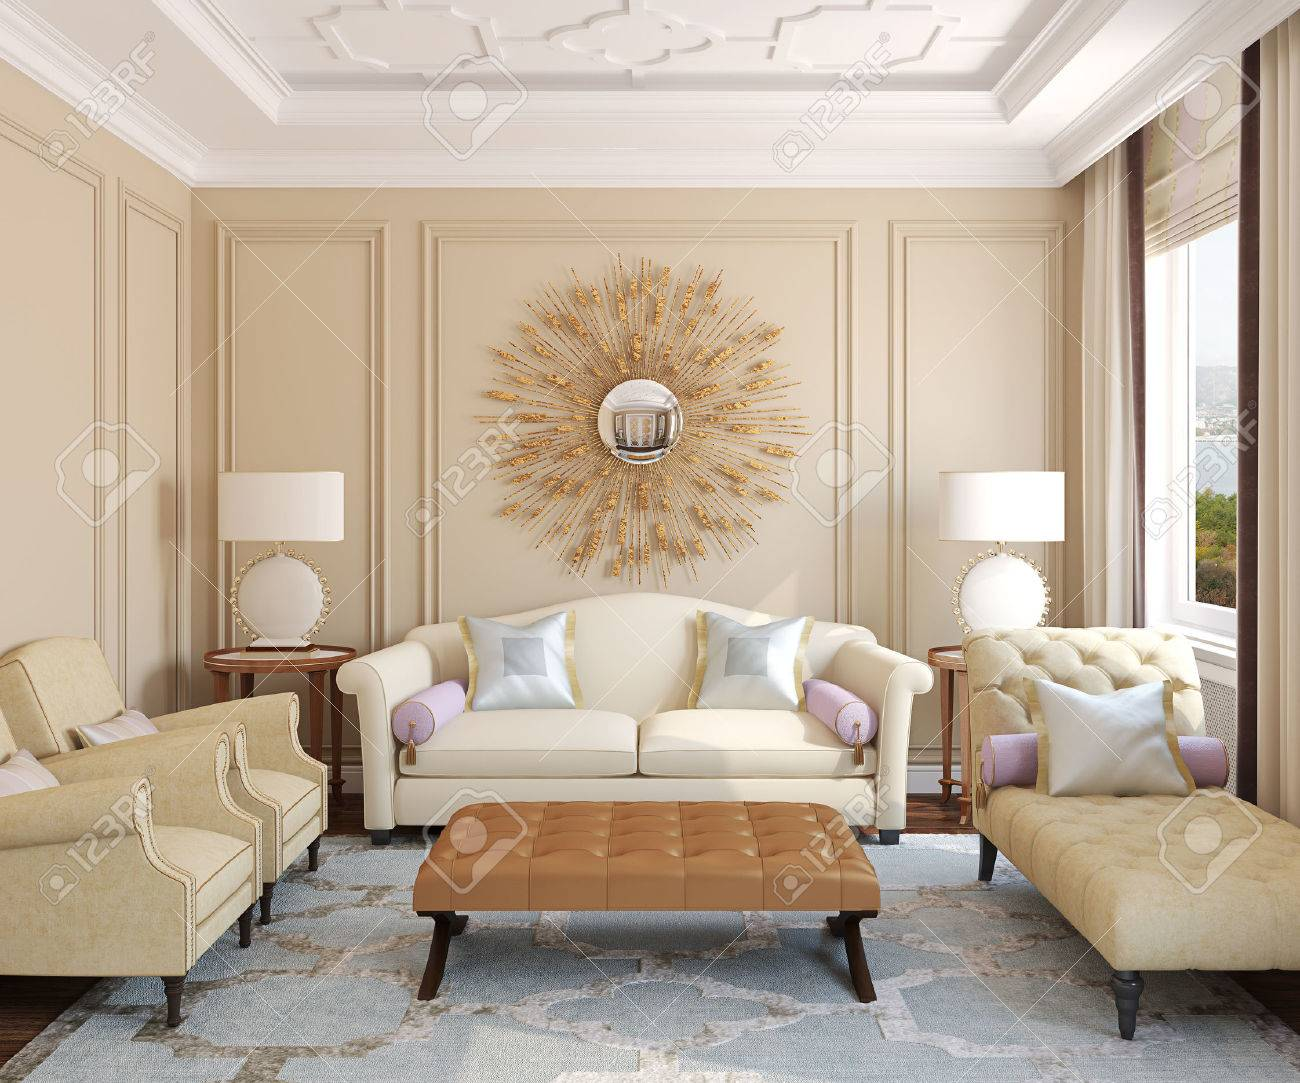 Luxury living-room interior. 3d render. Photo behind the window was made by me. - 45316482